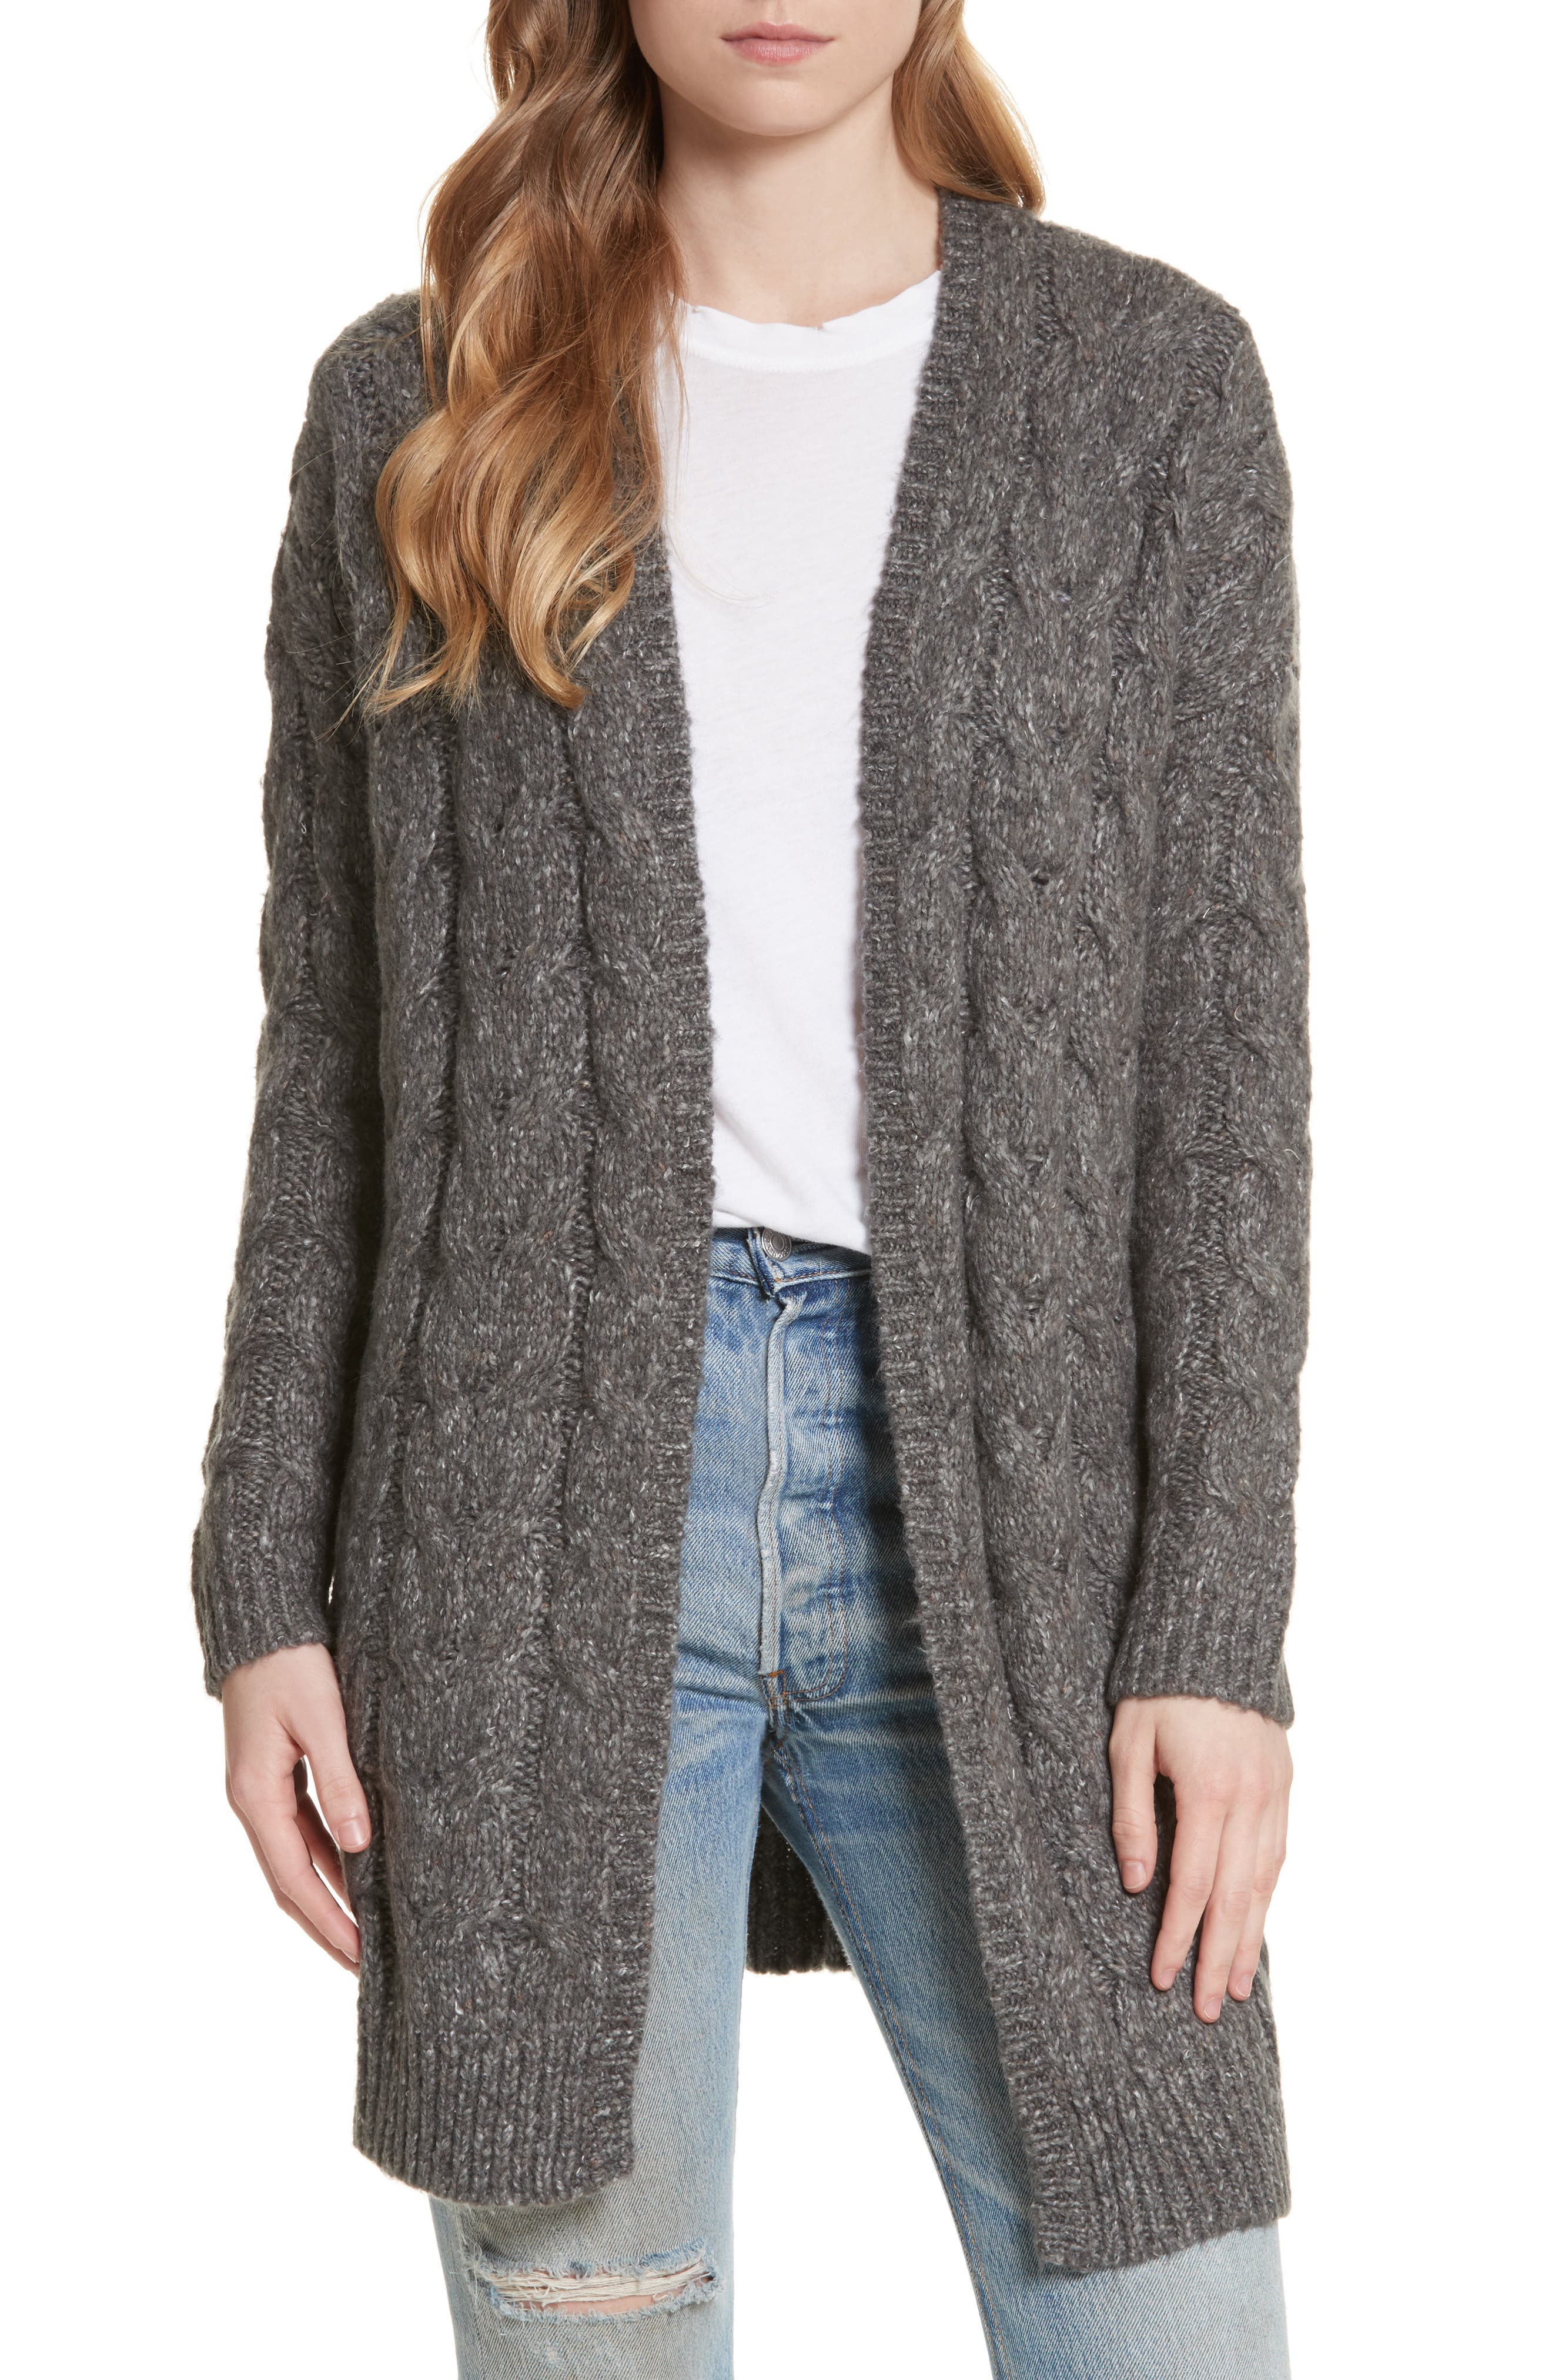 Main Image - Soft Joie Tienna Cable-Knit Cardigan